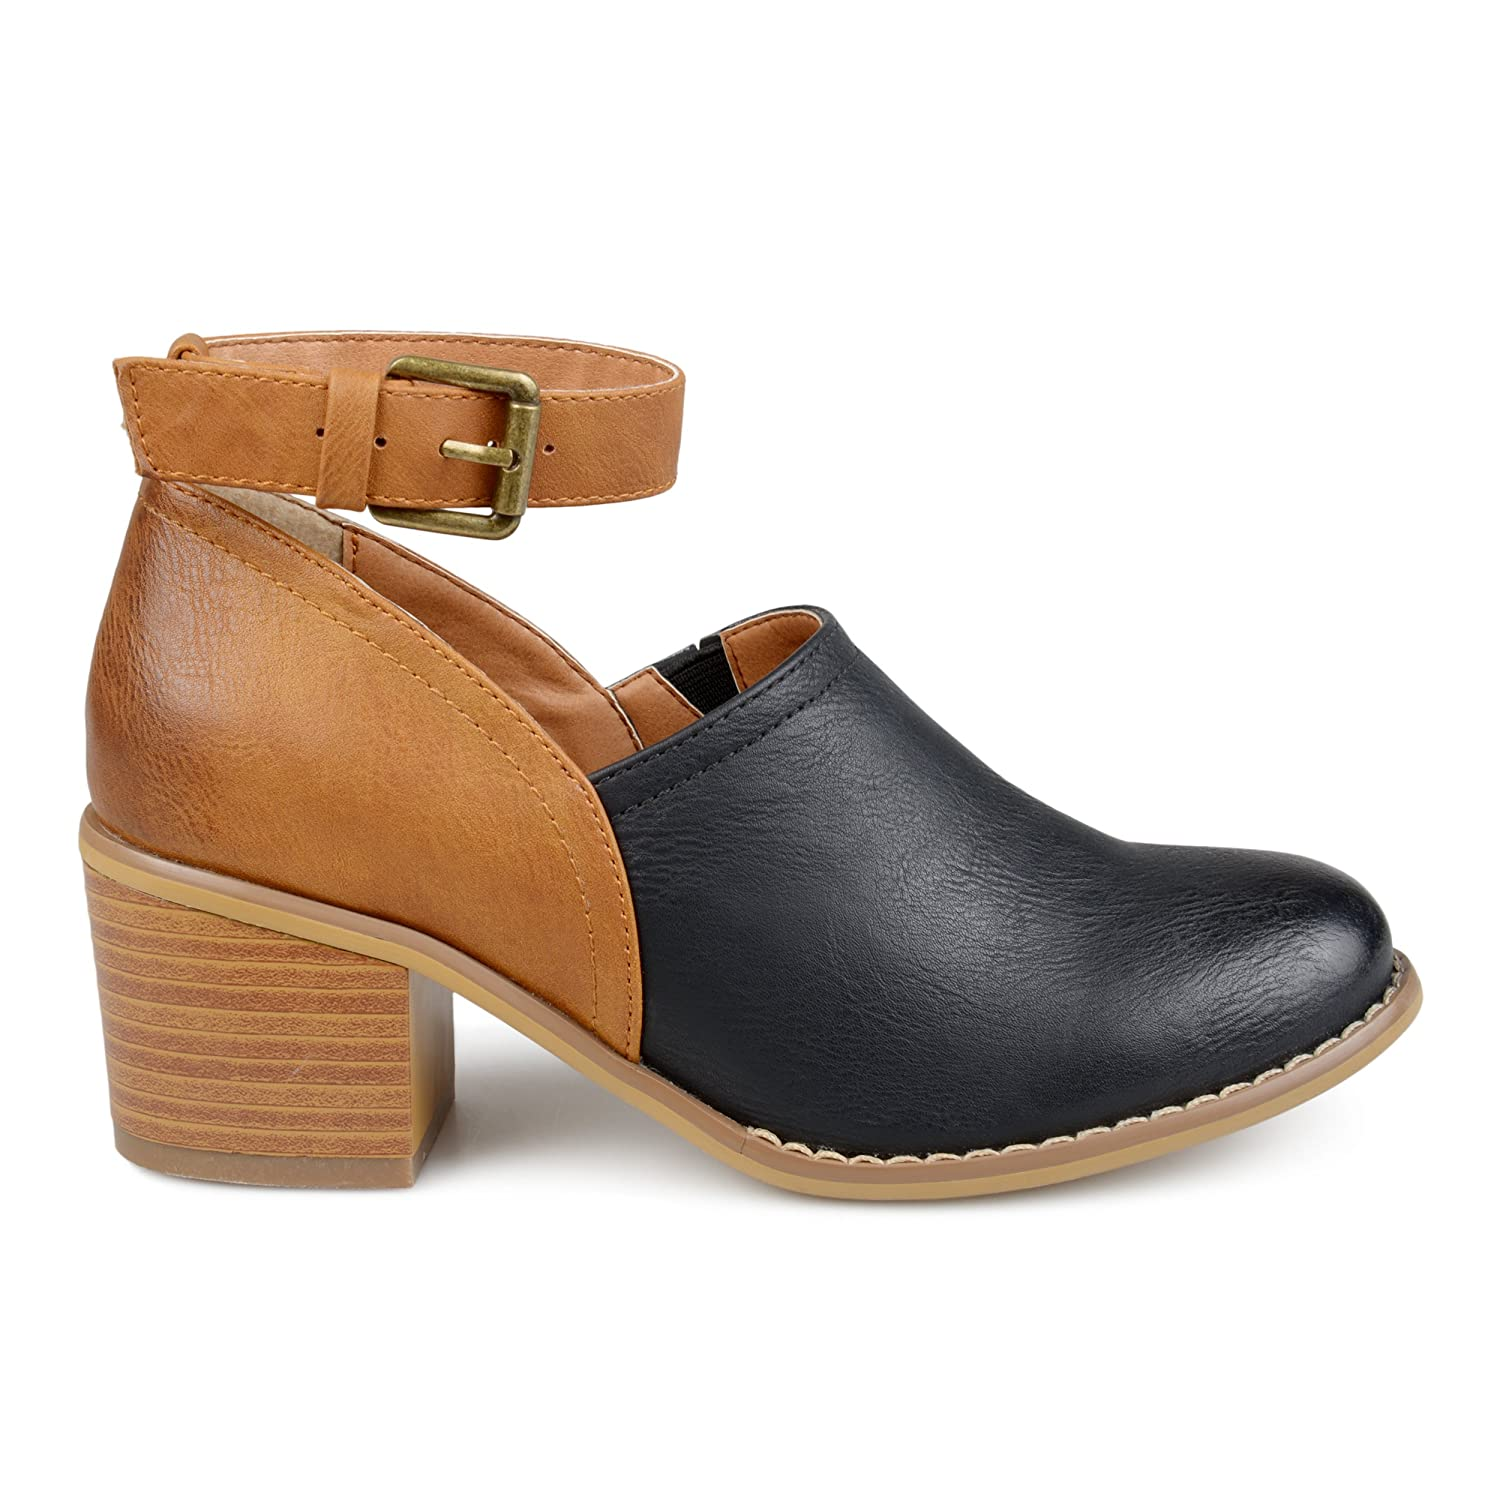 Brinley Co Womens Faux Leather Wood Stacked Heel Ankle Strap Clogs